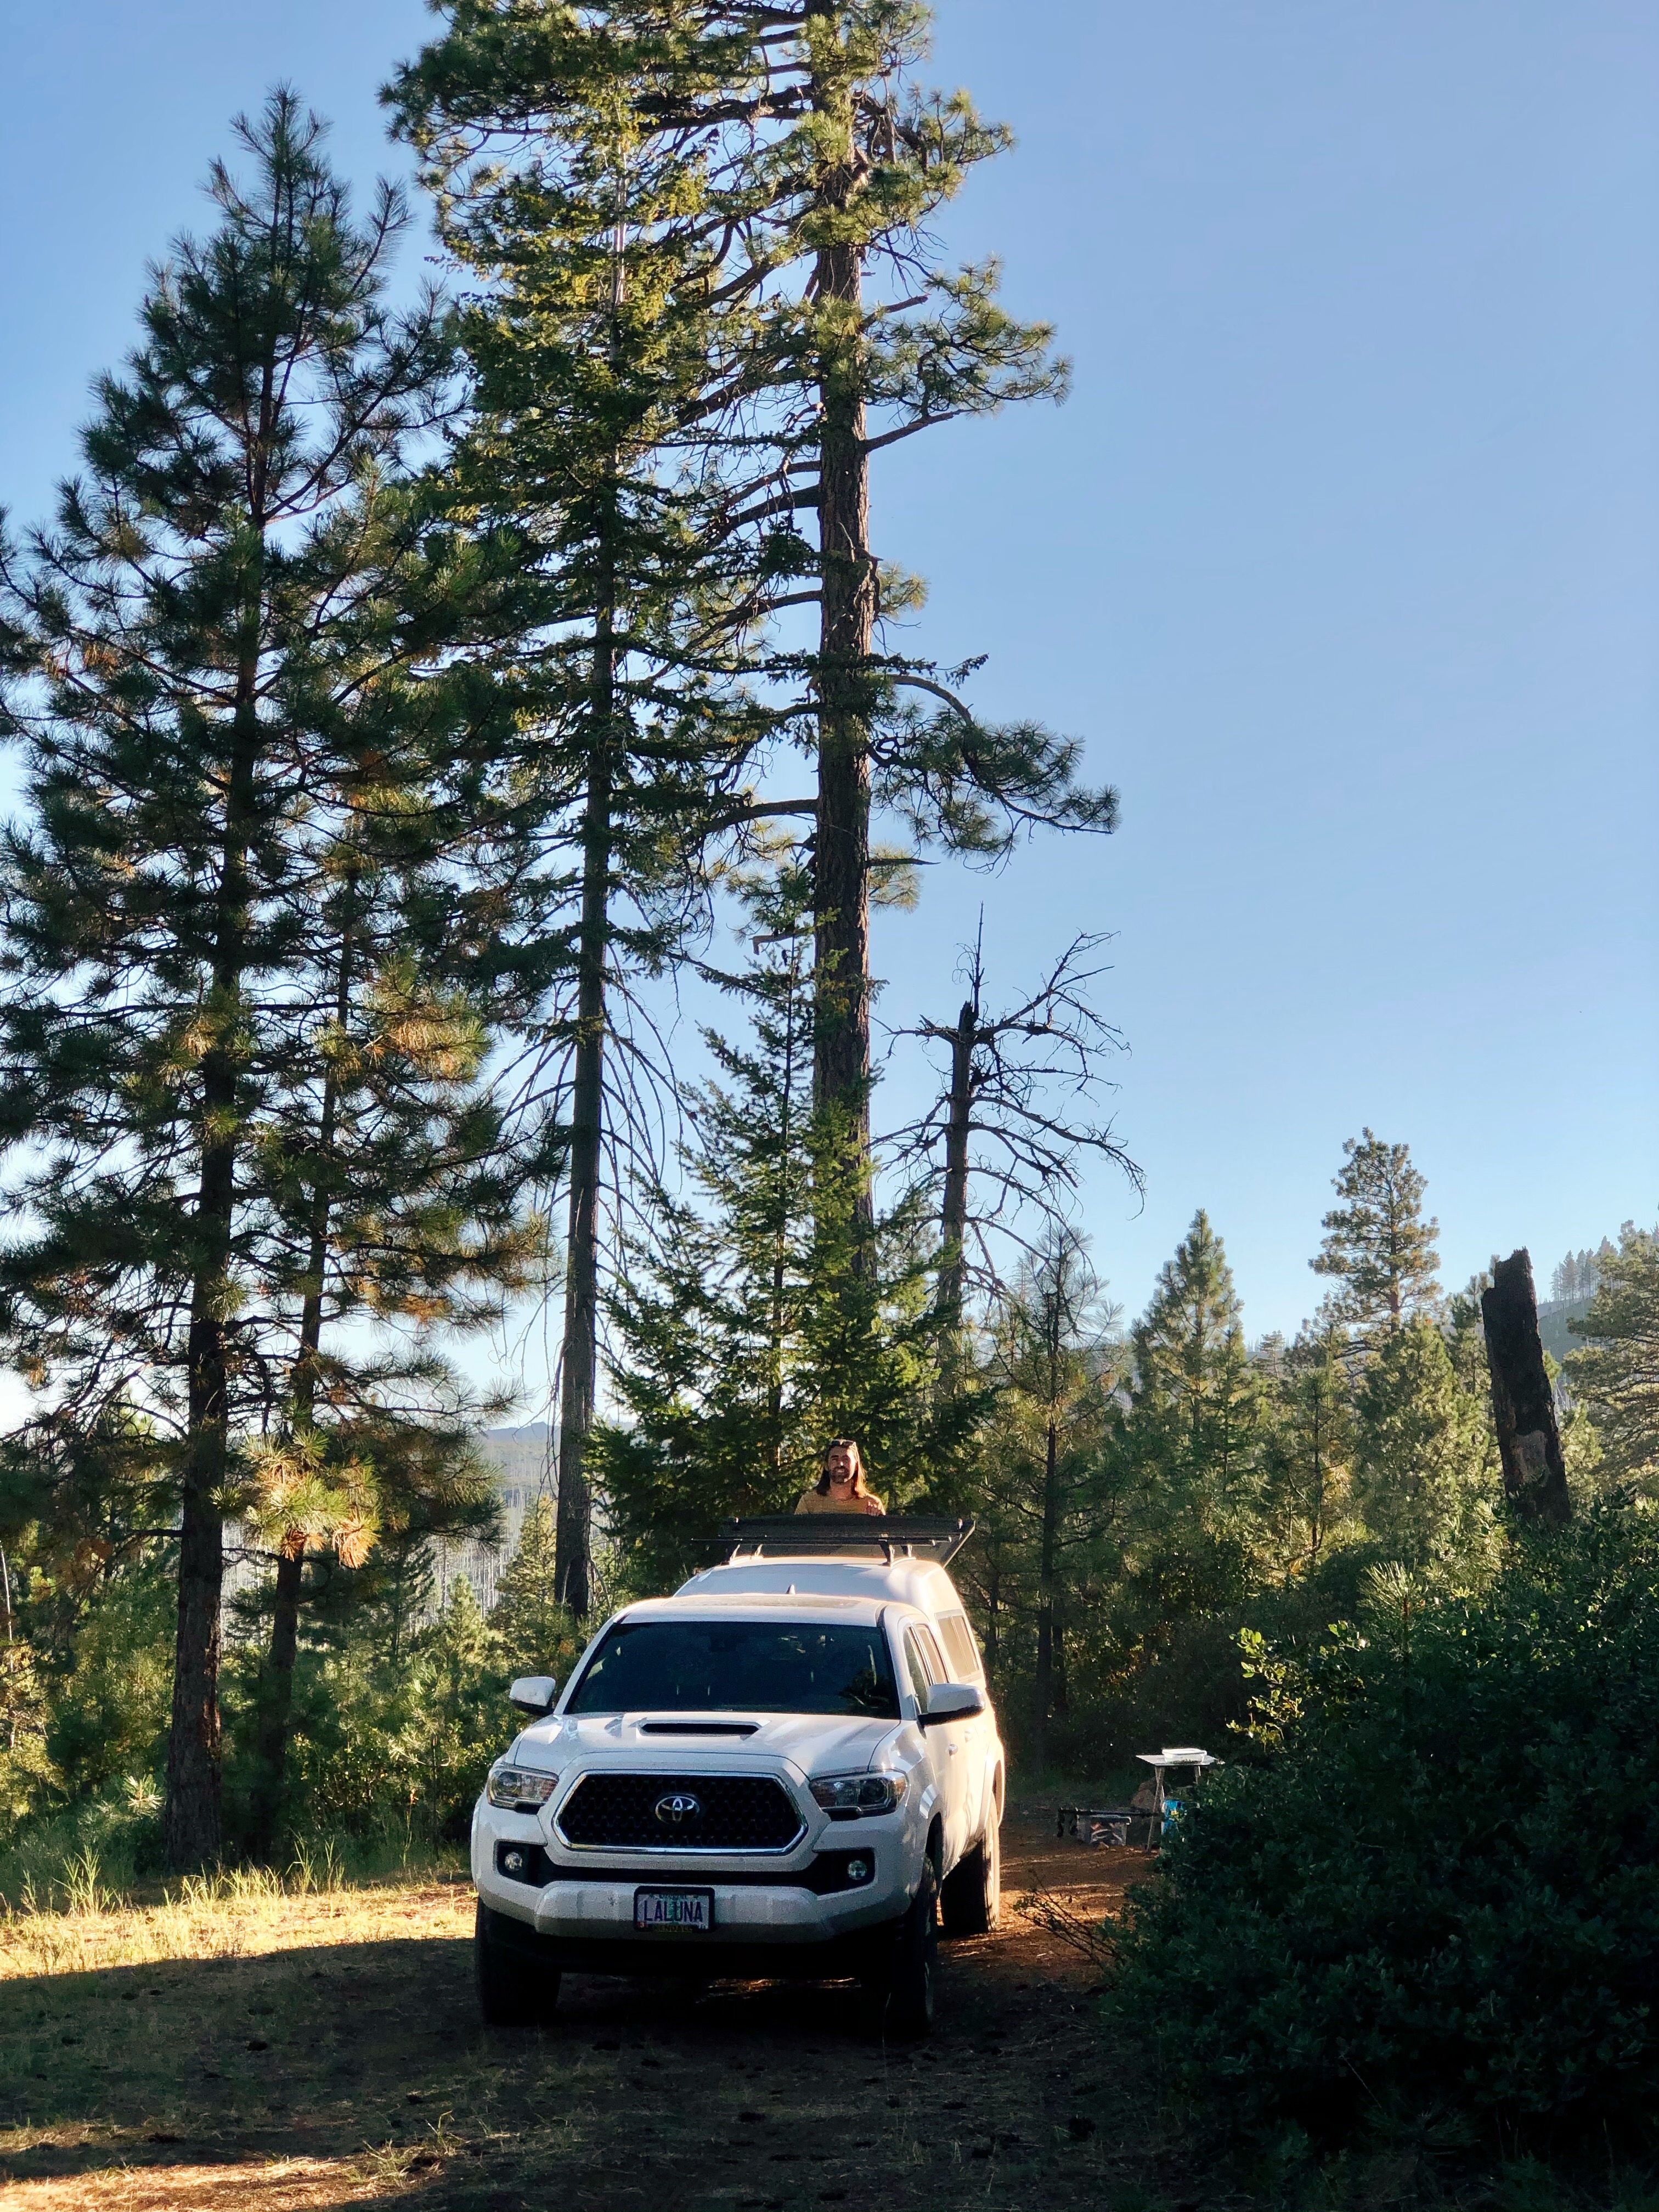 A photo of our white Toyota Tacoma, named Luna, in the woods